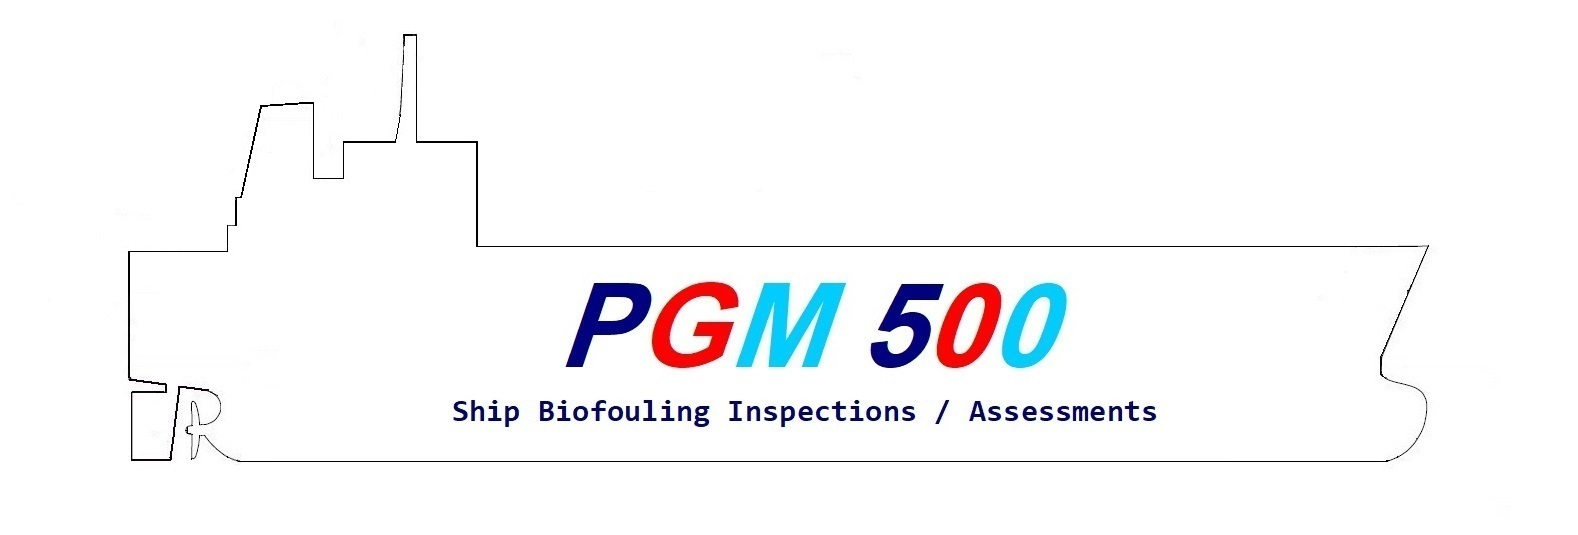 500 Ship Biofouling Inspections / Assessments completed Q2 2019